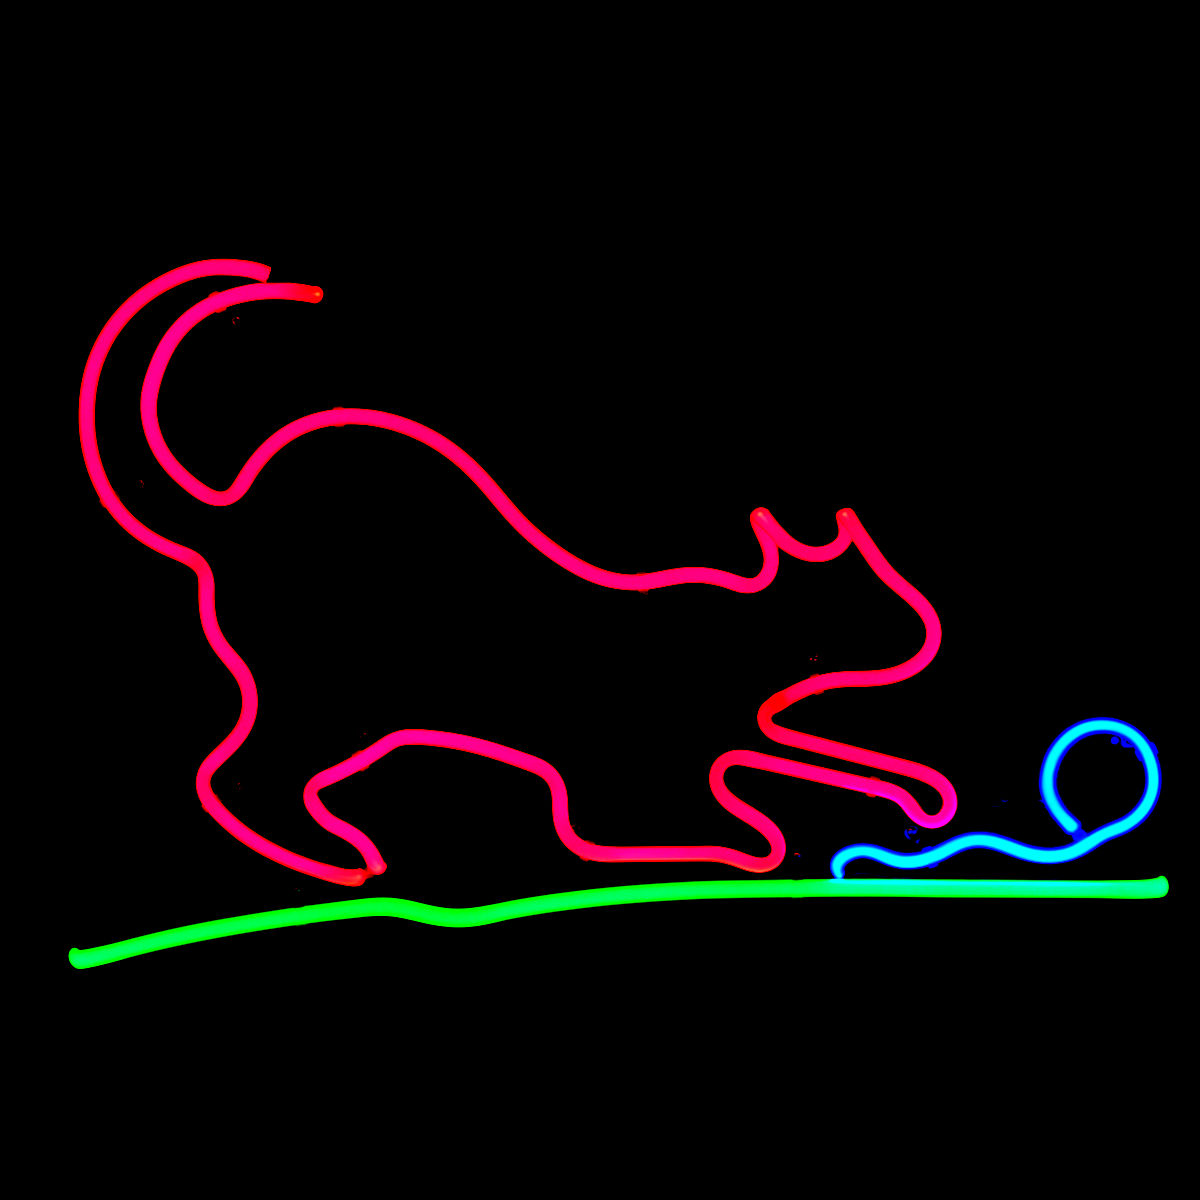 Cat Neon Light Sculpture by John Barton - Neon Glass Artist